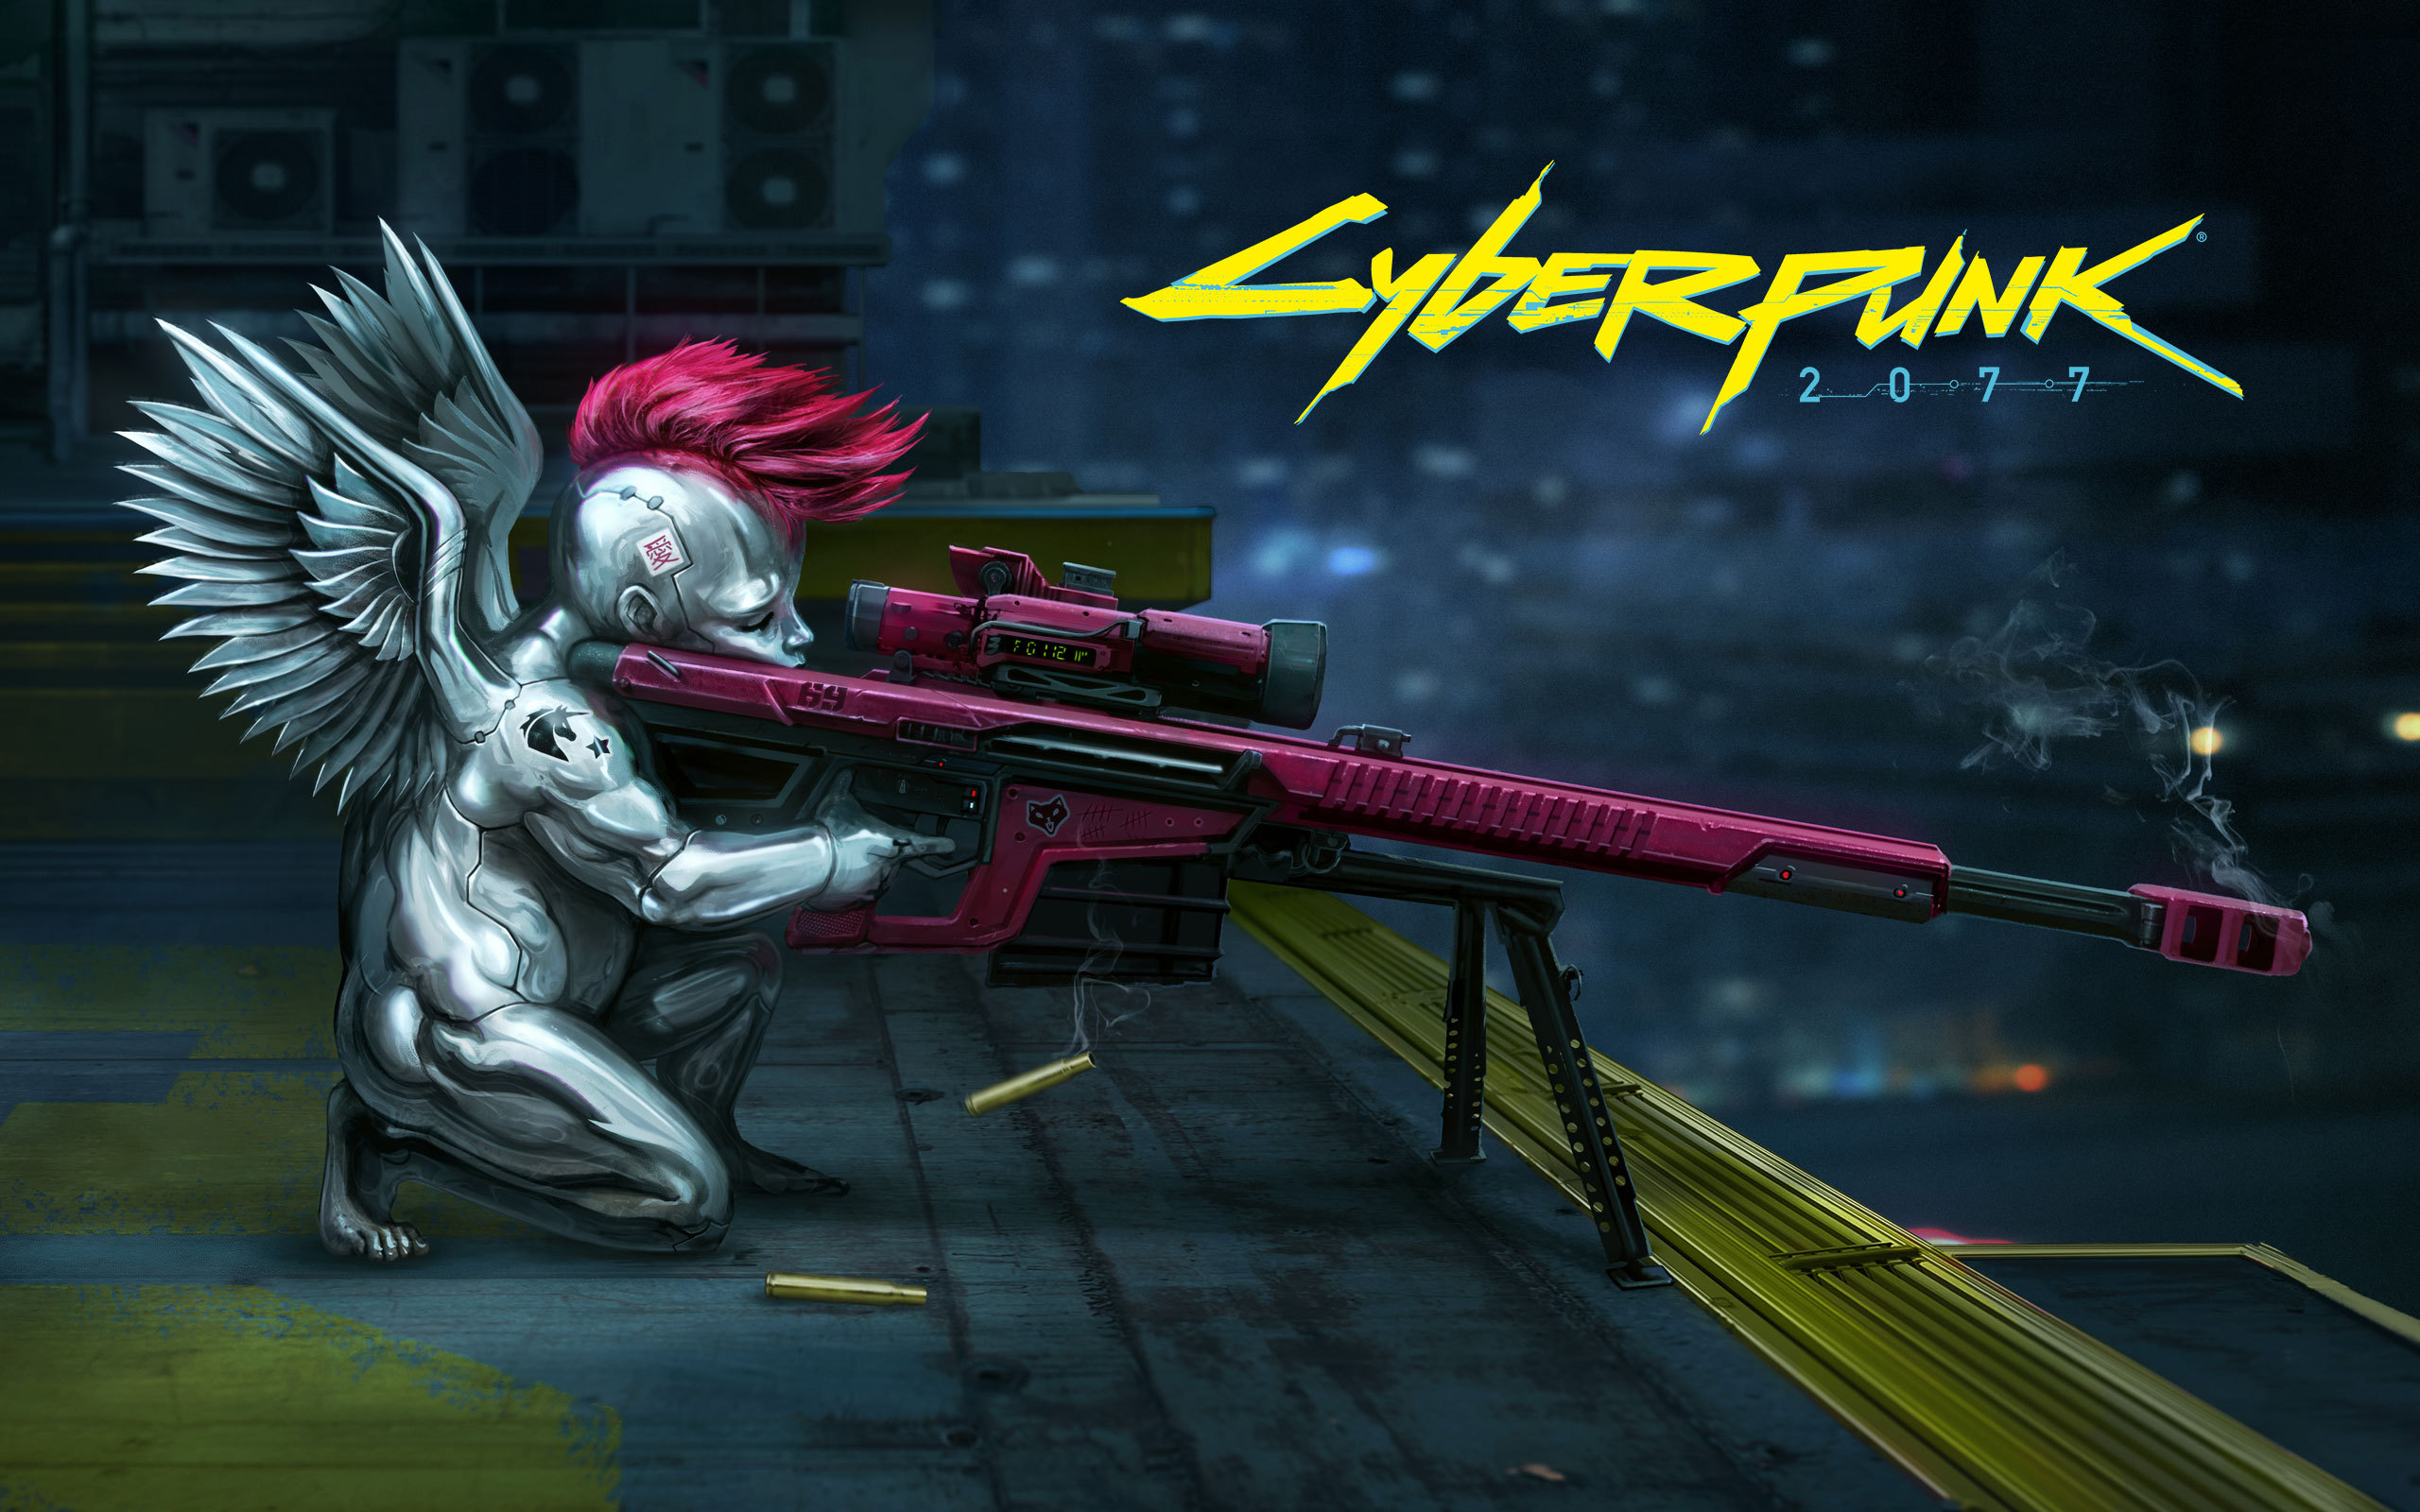 Cyberpunk 2077's Multiplayer Mode Is Confirmed – Arrives After The April 2020 Launch And Free Post-Launch Singleplayer DLC